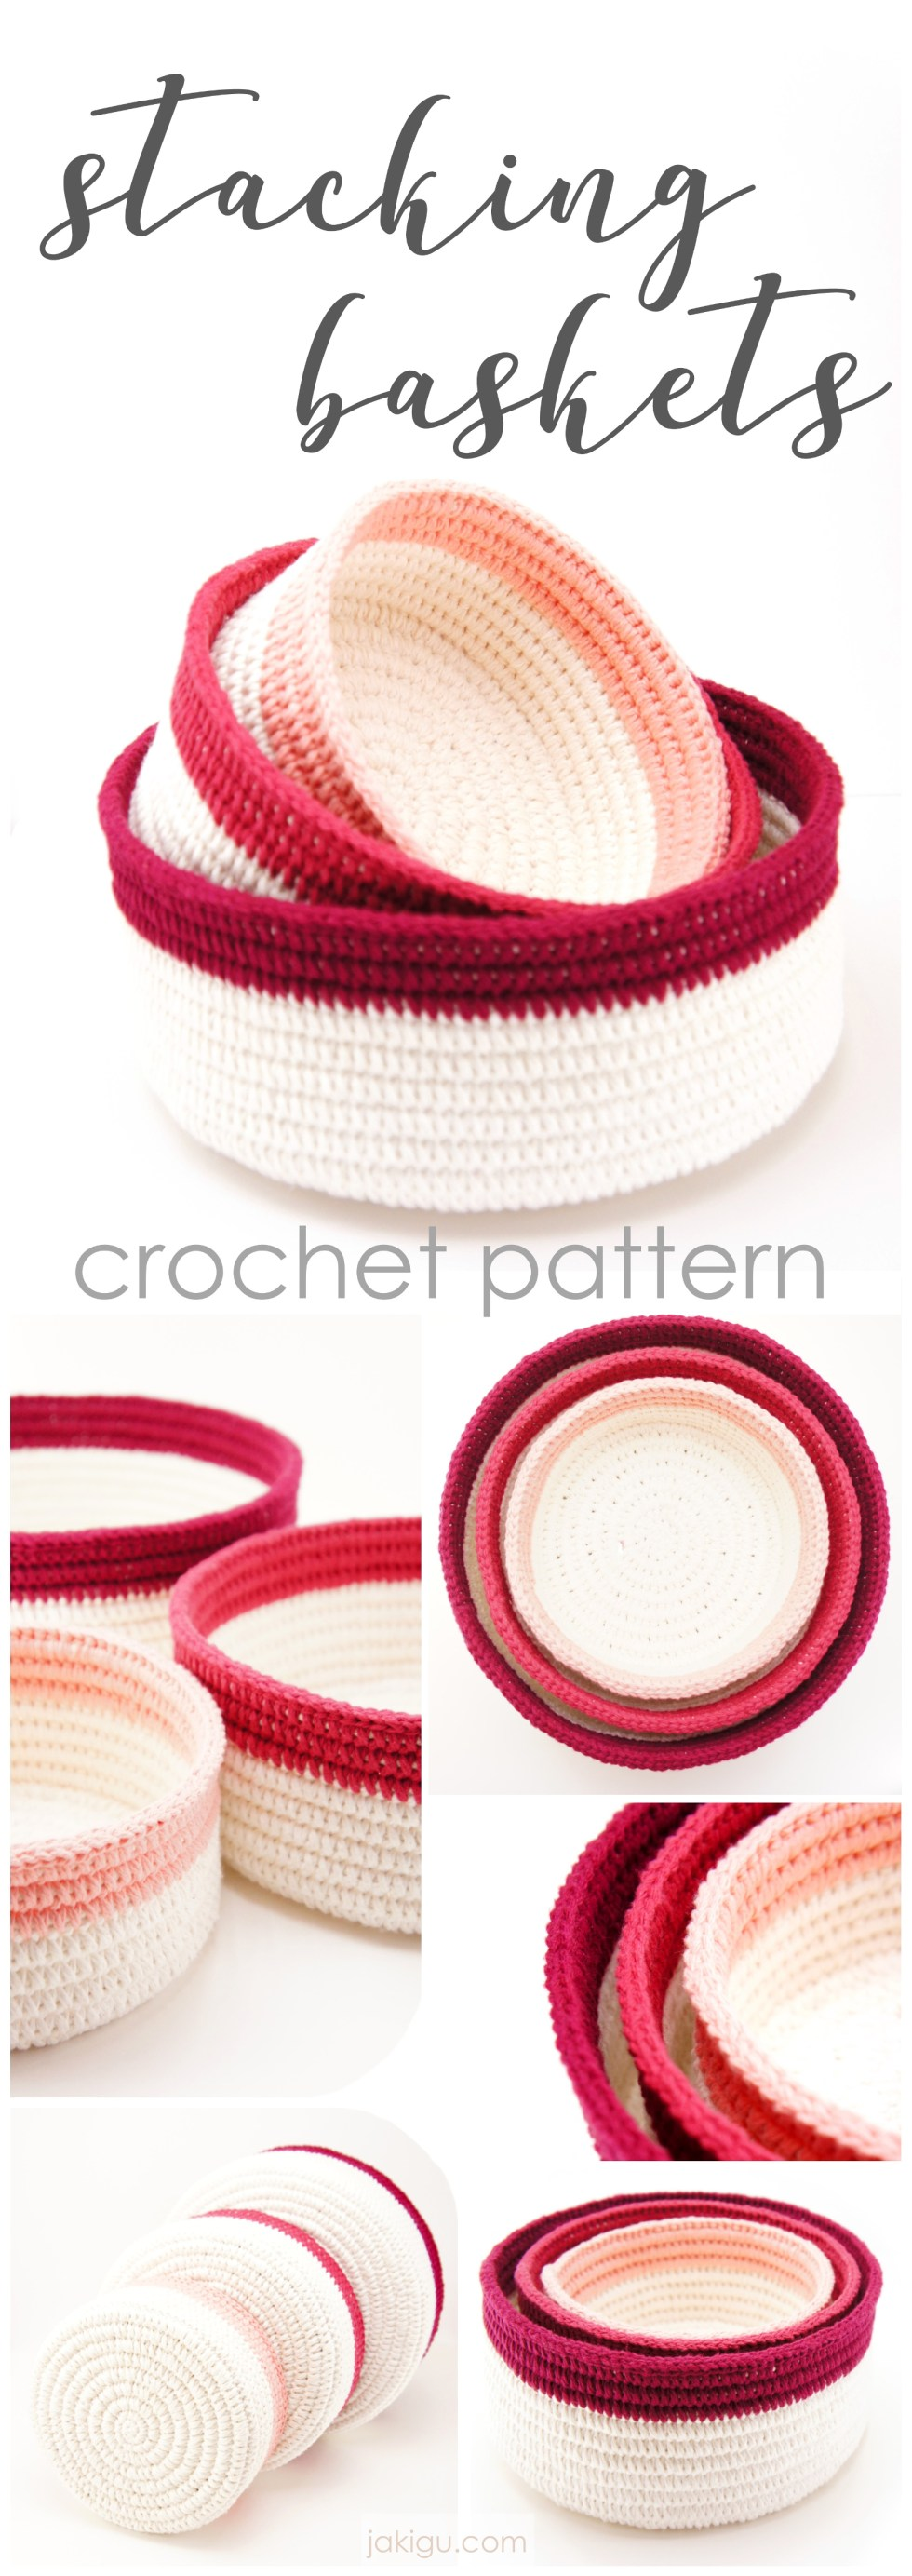 Stacking bowls - an original coiled crochet pattern by jakigu.com